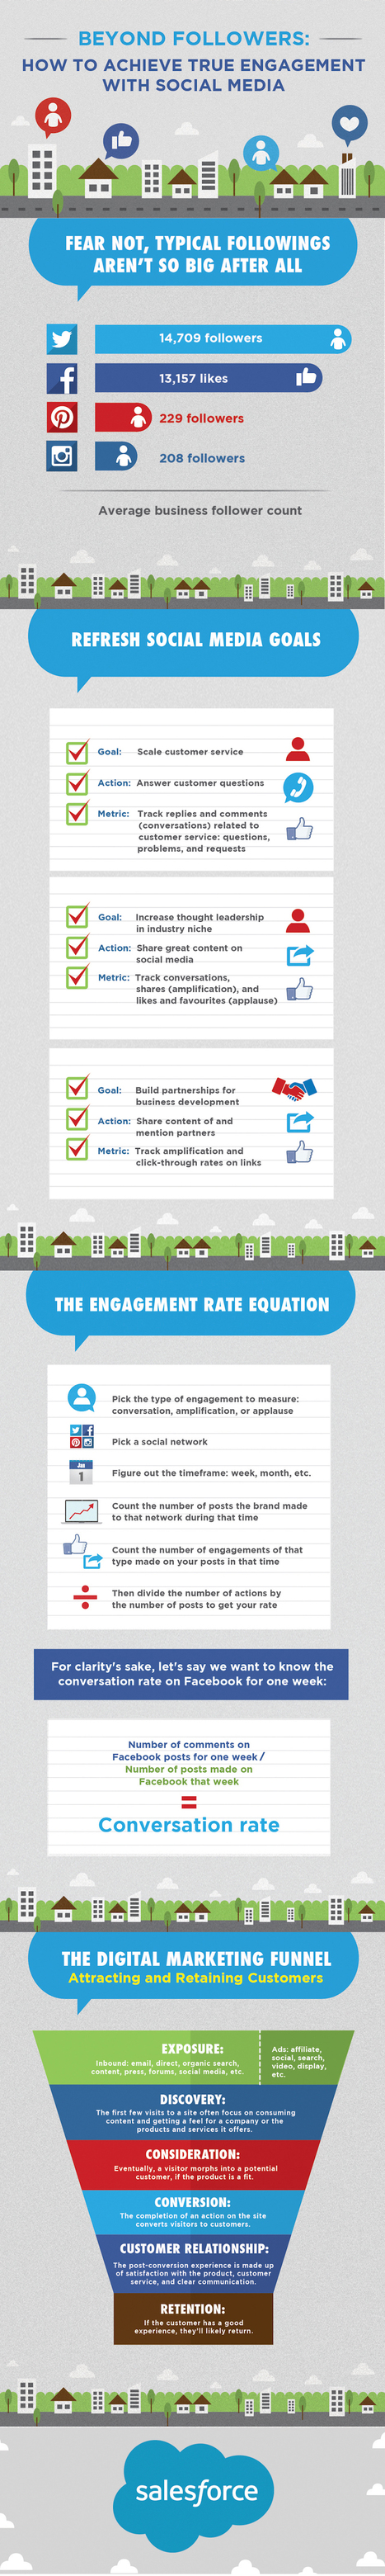 How to Achieve True Engagement With Social Media #INFOGRAPHIC | social media useful  tools | Scoop.it